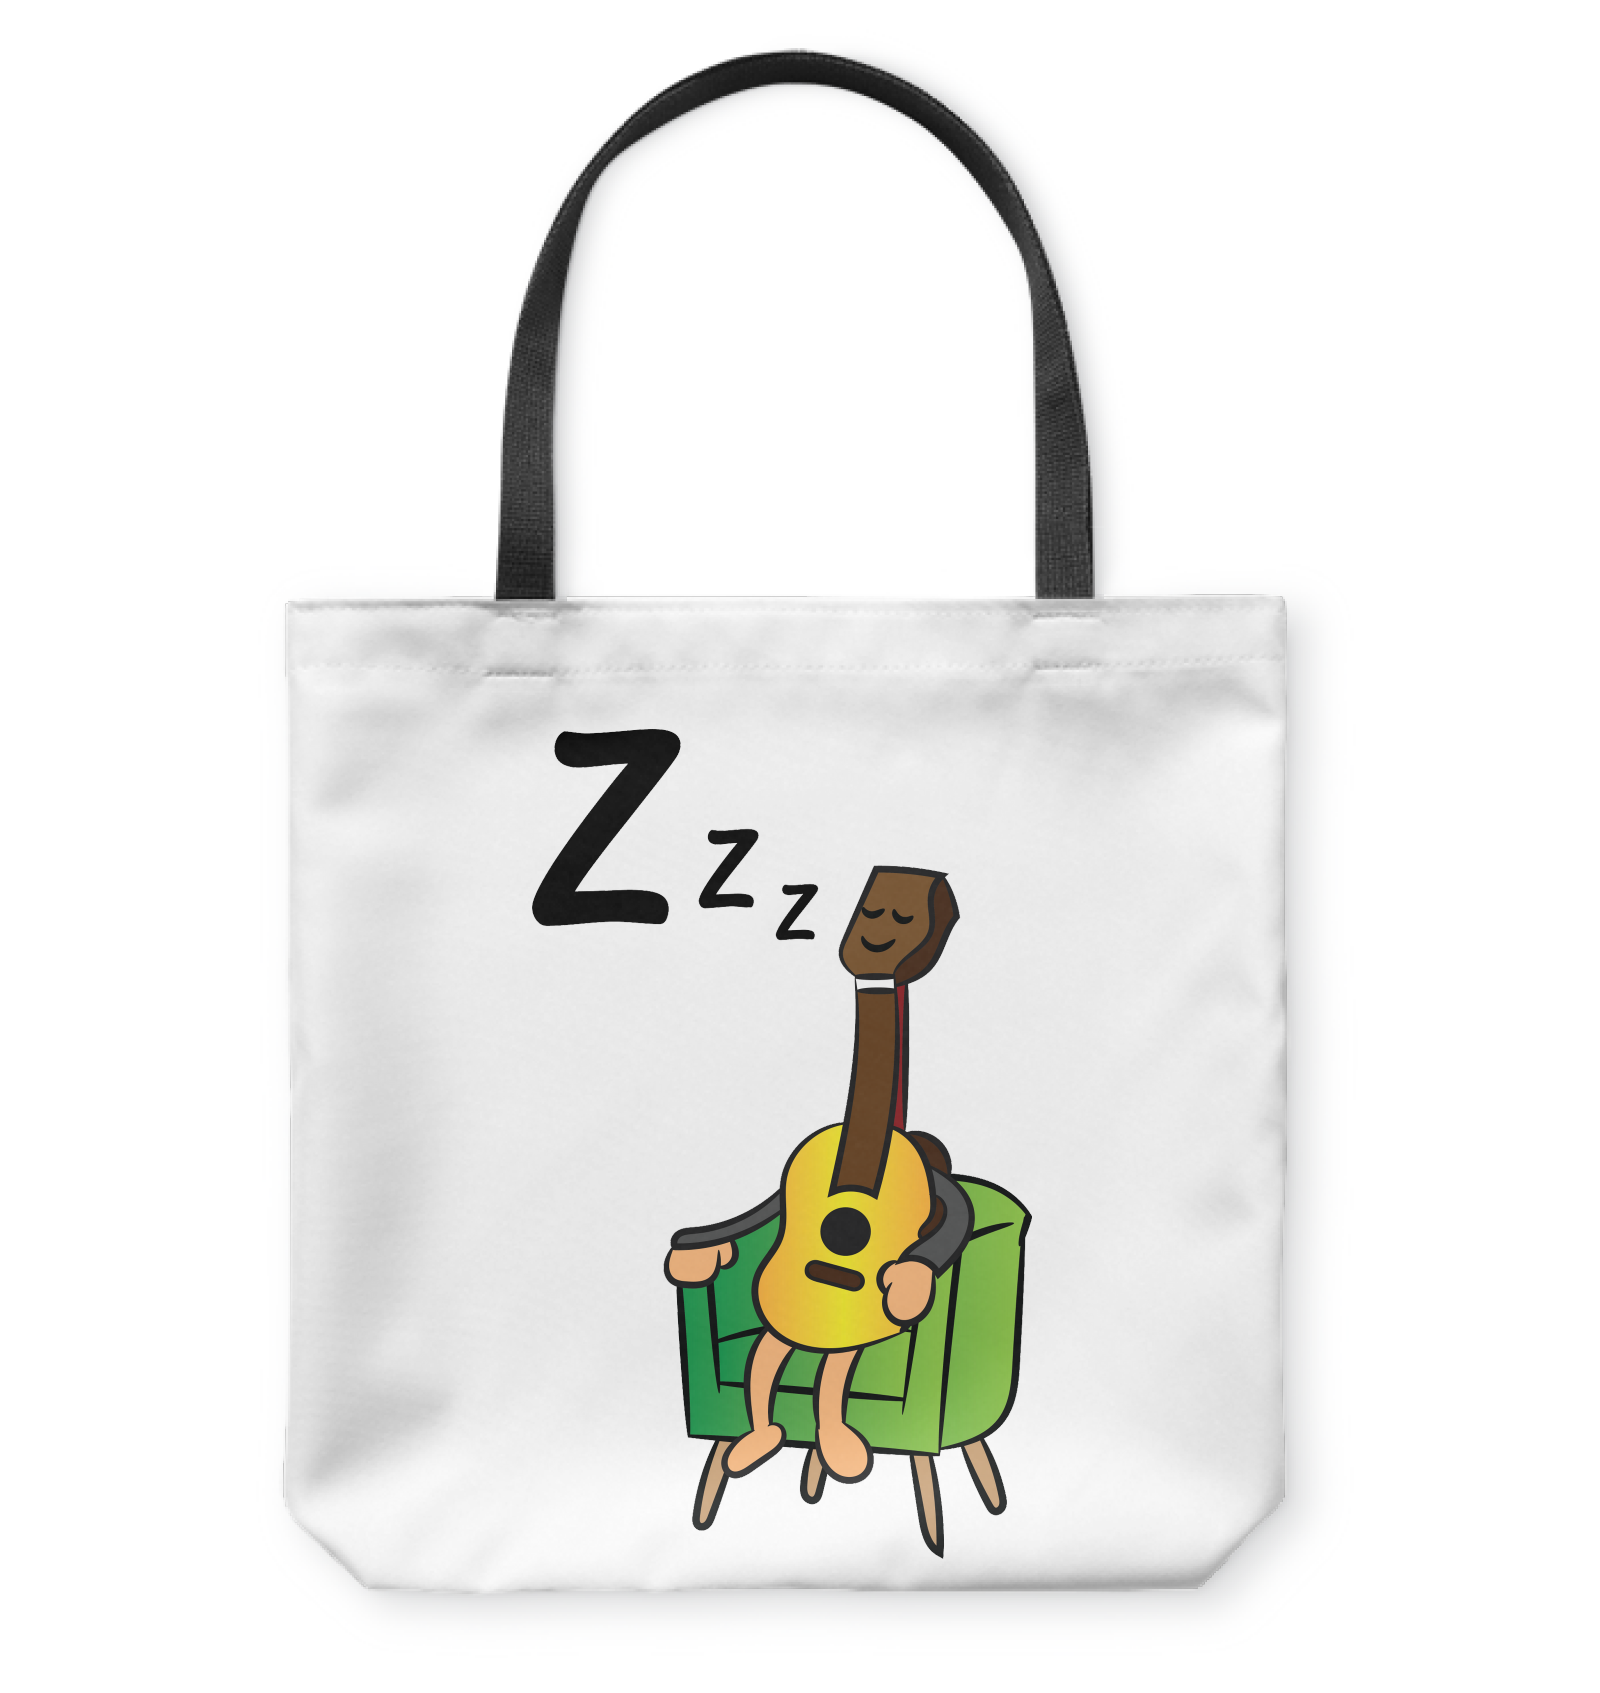 Sleeping Guitar - Basketweave Tote Bag